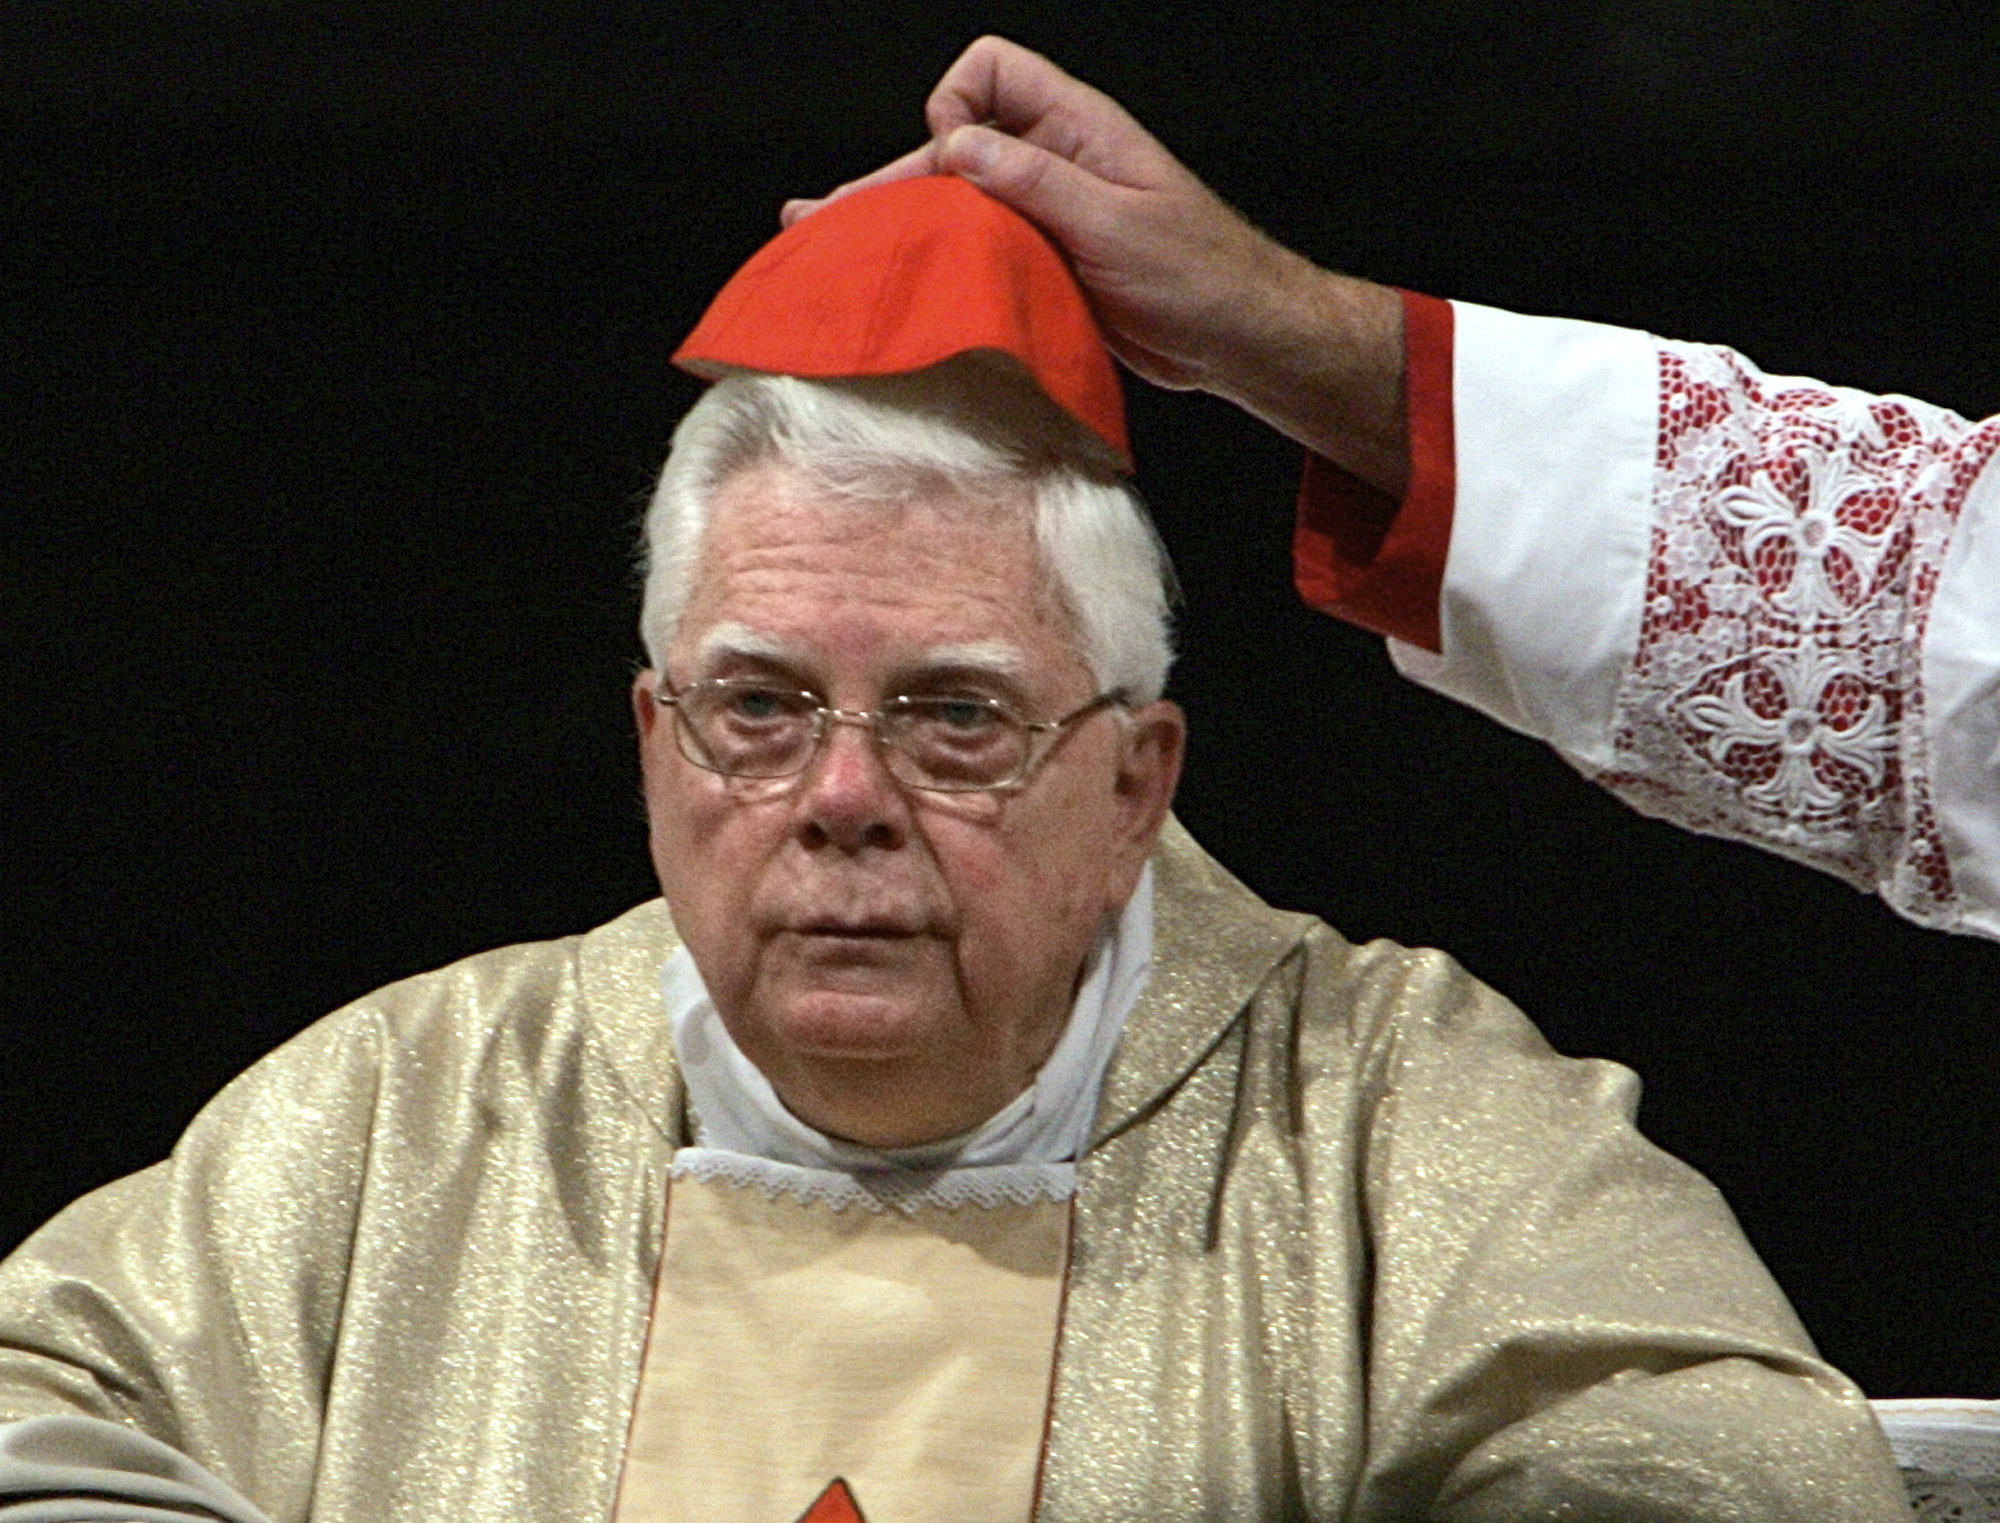 FILE - In this Thursday, Aug. 5, 2004 file photo, Cardinal Bernard Law has his skull cap adjusted during the ceremony for Our Lady of the Snows, in St. Mary Major's Basilica in Rome, Italy. An official with the Catholic Church said Tuesday, Dec. 19, 2017, that Cardinal Bernard Law, the disgraced former archbishop of Boston, has died at 86. Law recently had been hospitalized in Rome. Law stepped down under pressure in 2002 over his handling of clergy sex abuse cases. (AP Photo/Domenico Stinellis, File)